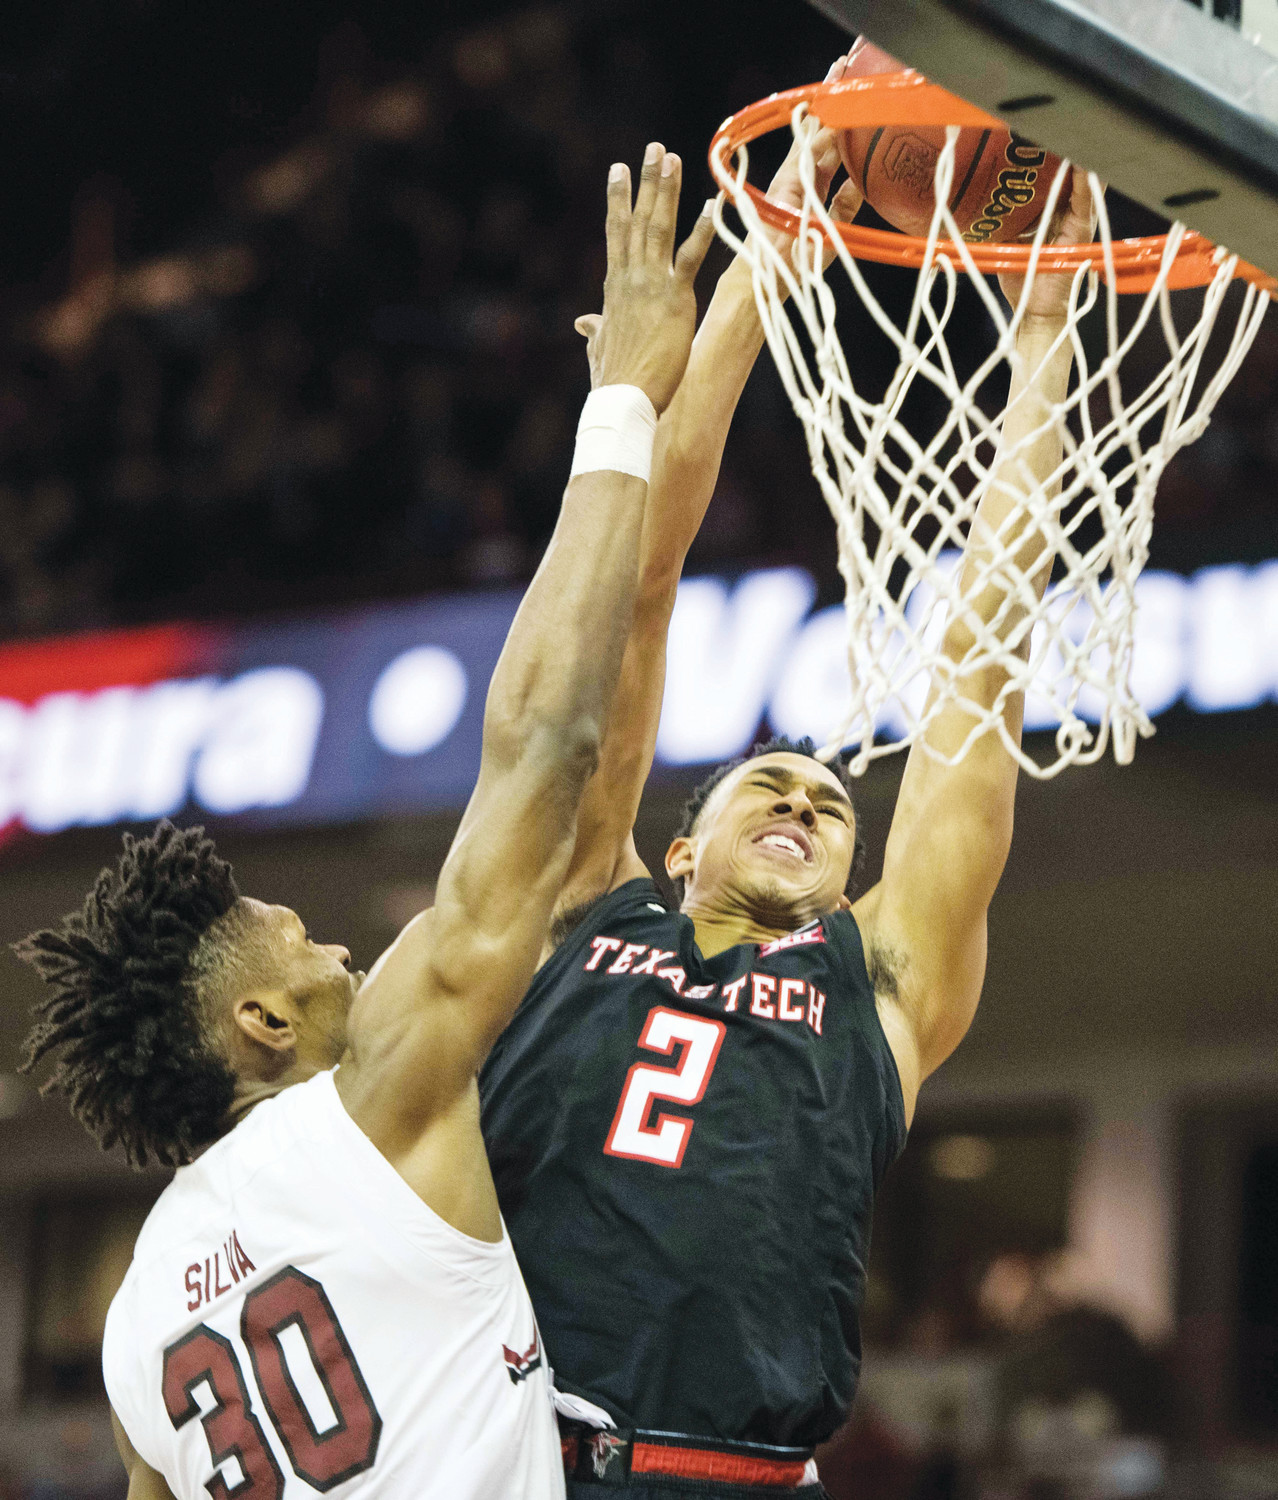 Texas Tech guard Zhaire Smith (2) dunks the ball against South Carolina forward Chris Silva (30) during the first half of the 14th-ranked Red Raiders' 70-63 victory on Saturday in Columbia.